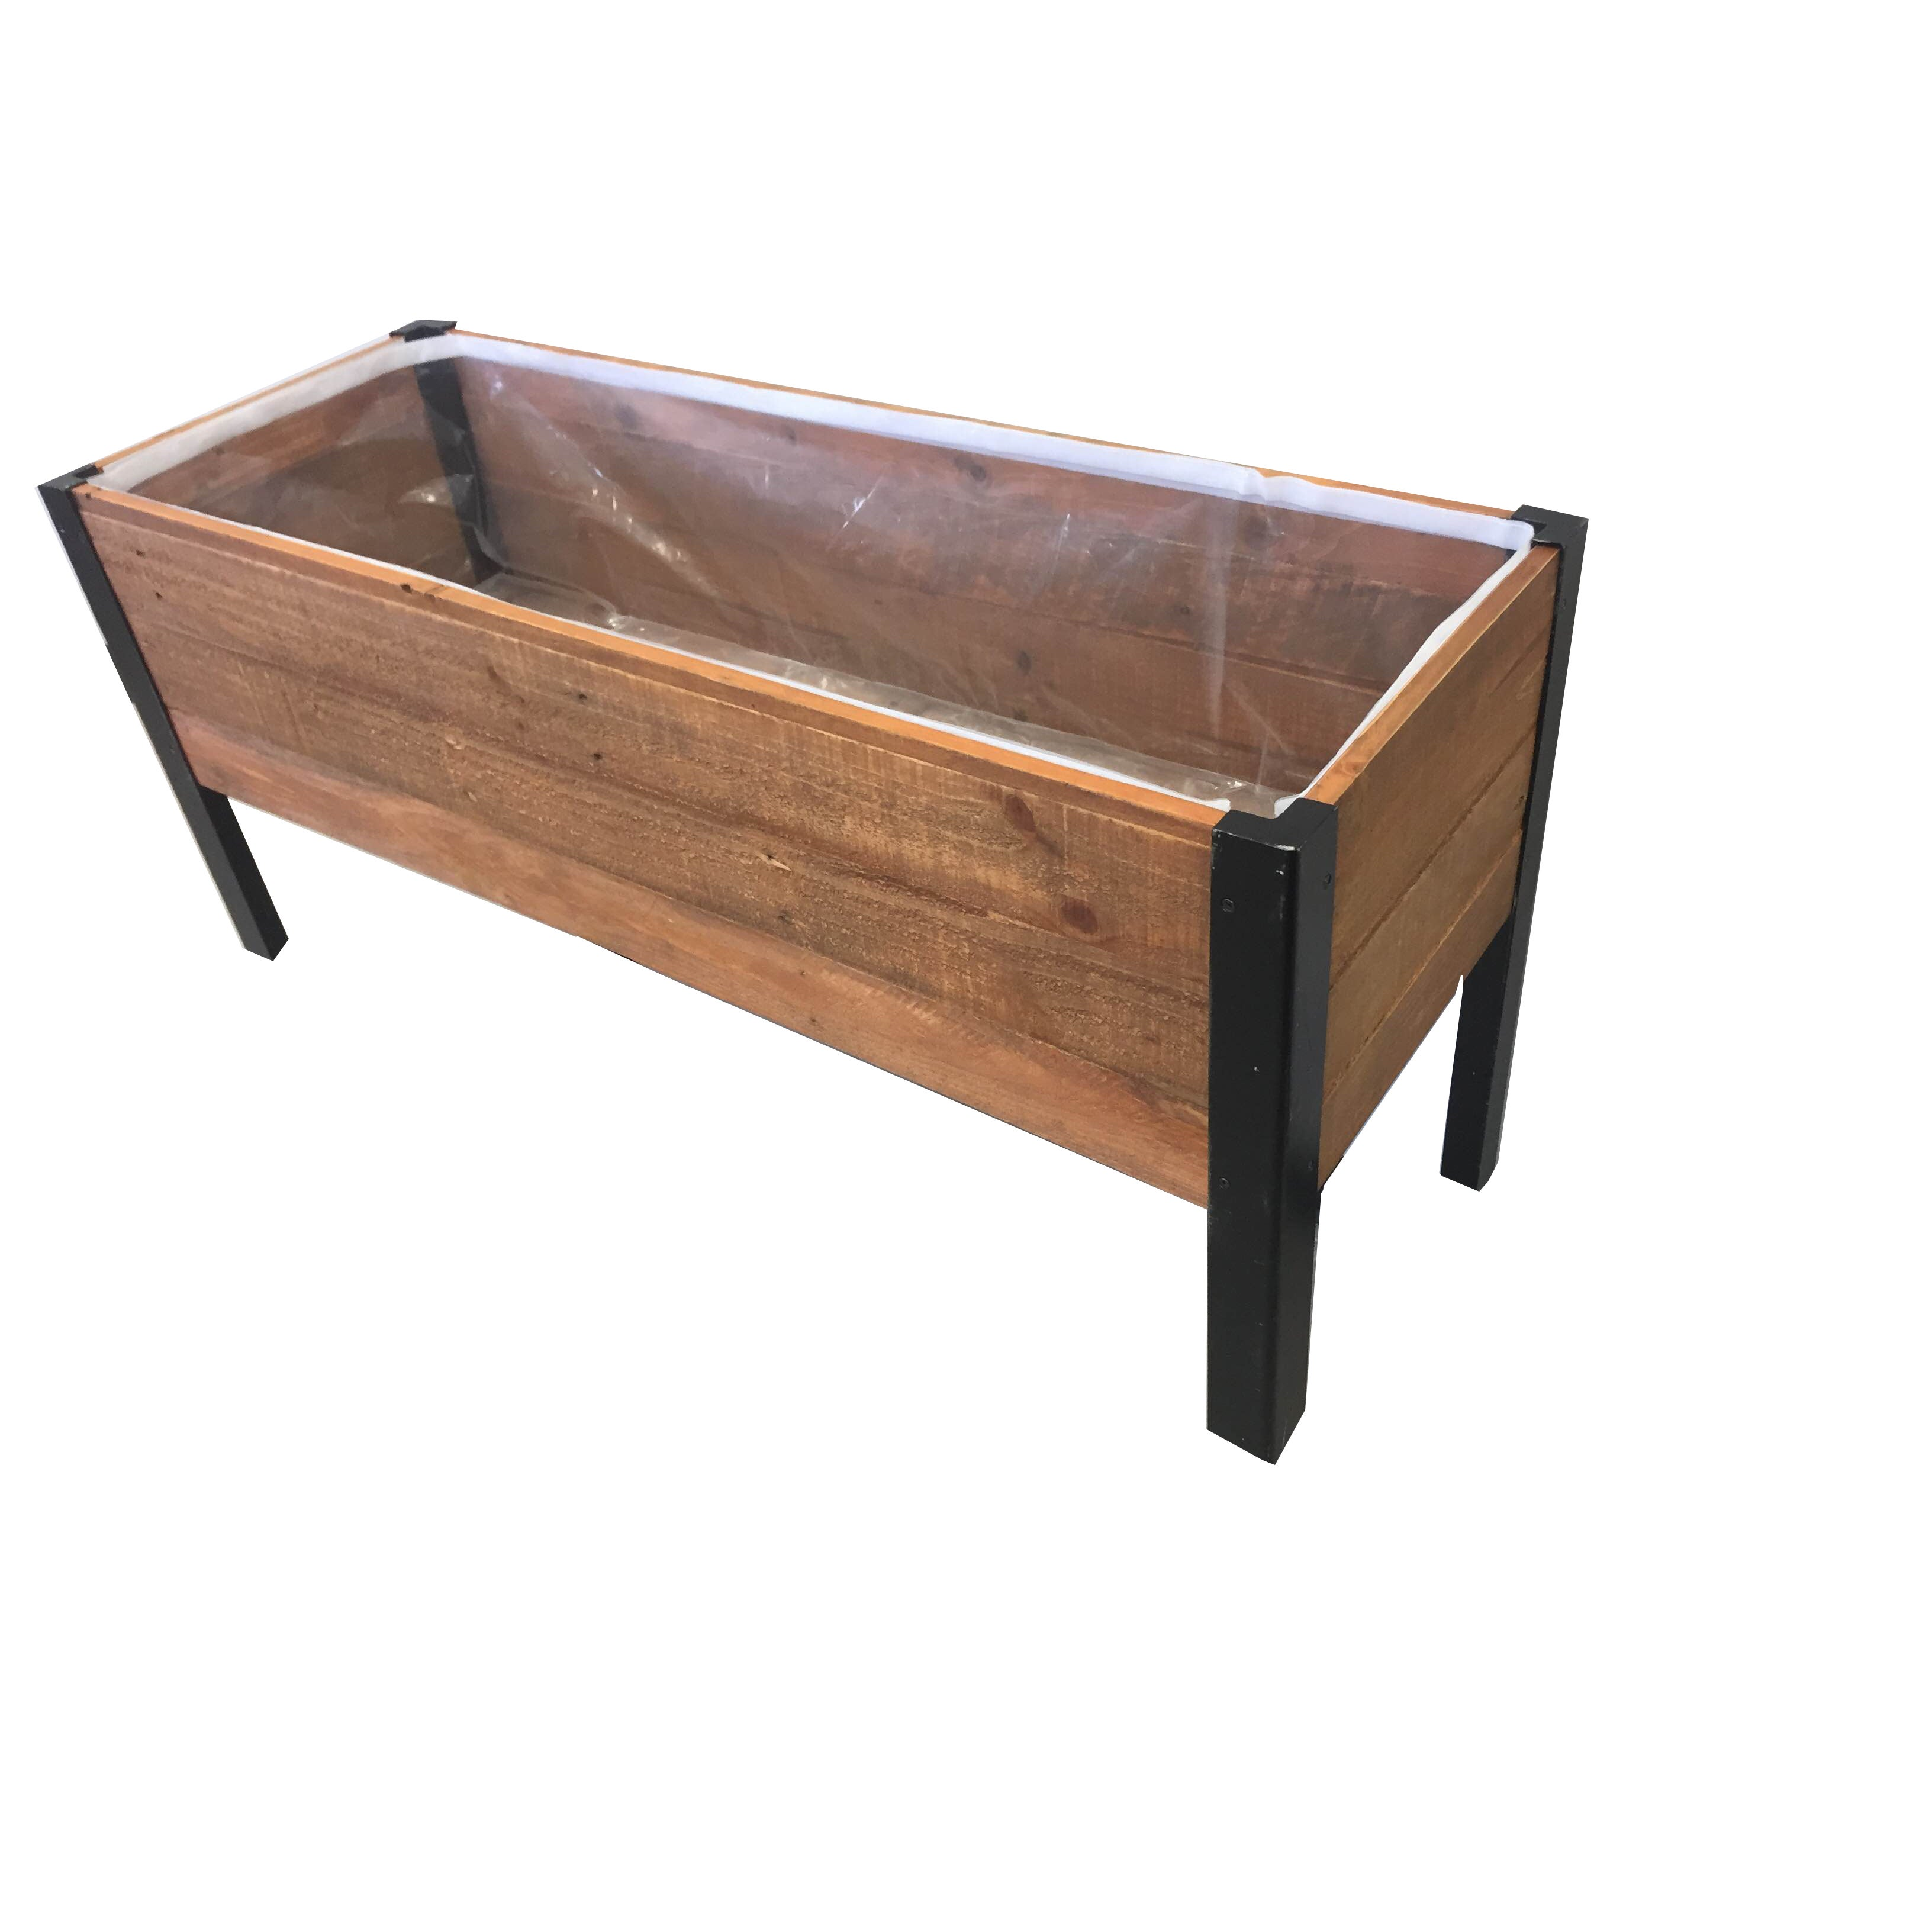 dublin up built sheds bobes wooden boxes buildings garden platner bespoke order planter to